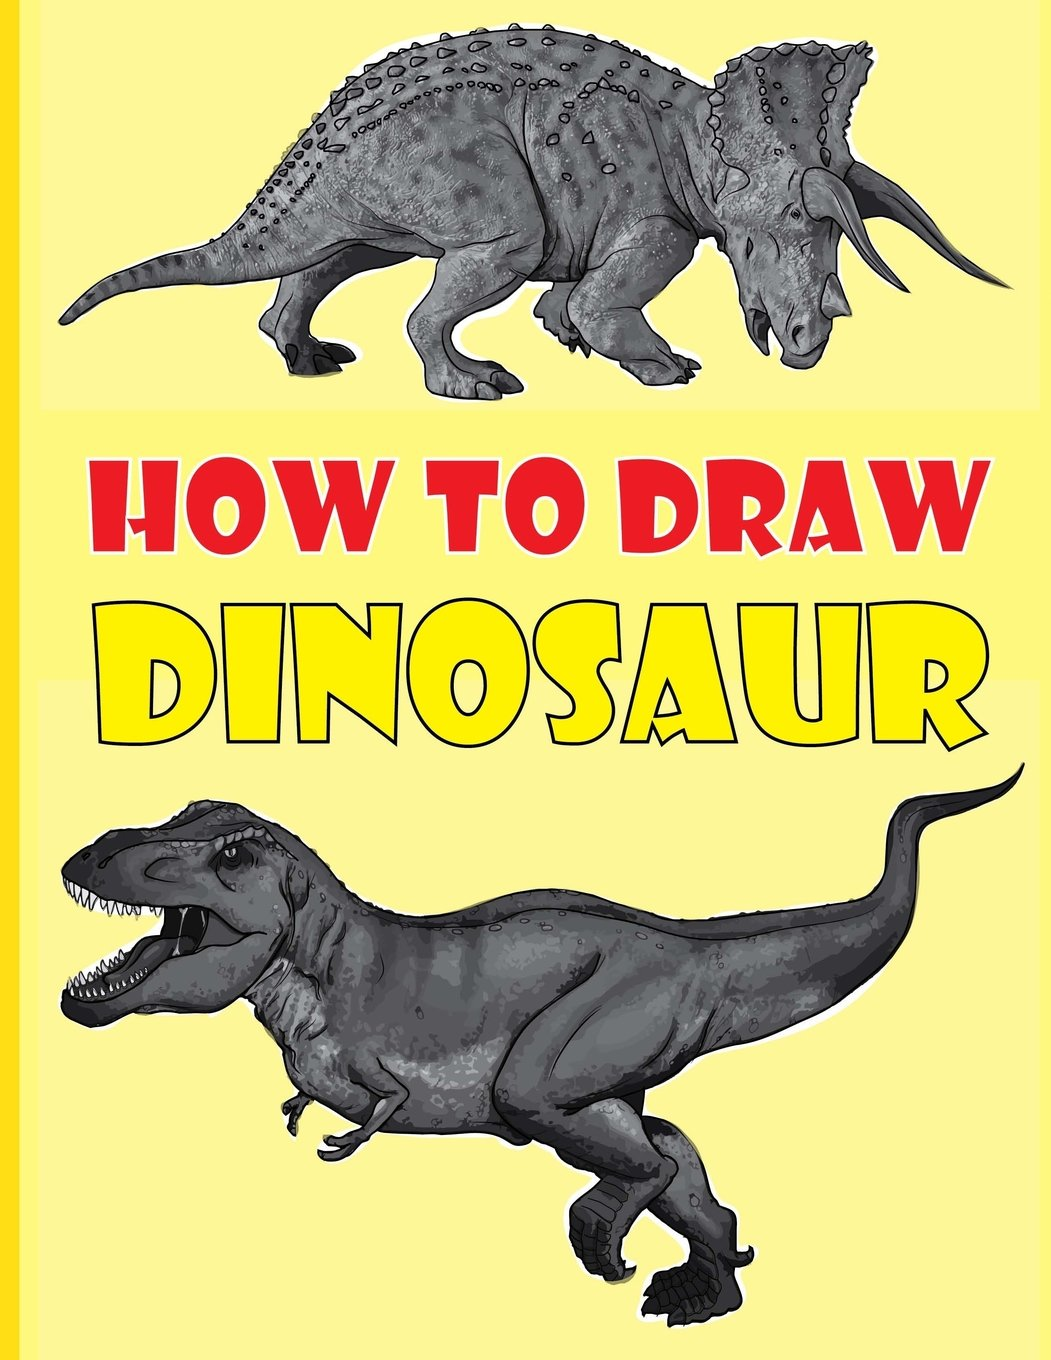 How to draw dinosaurs the step by step dinosaur drawing book ges lone 9781983591471 amazon com books